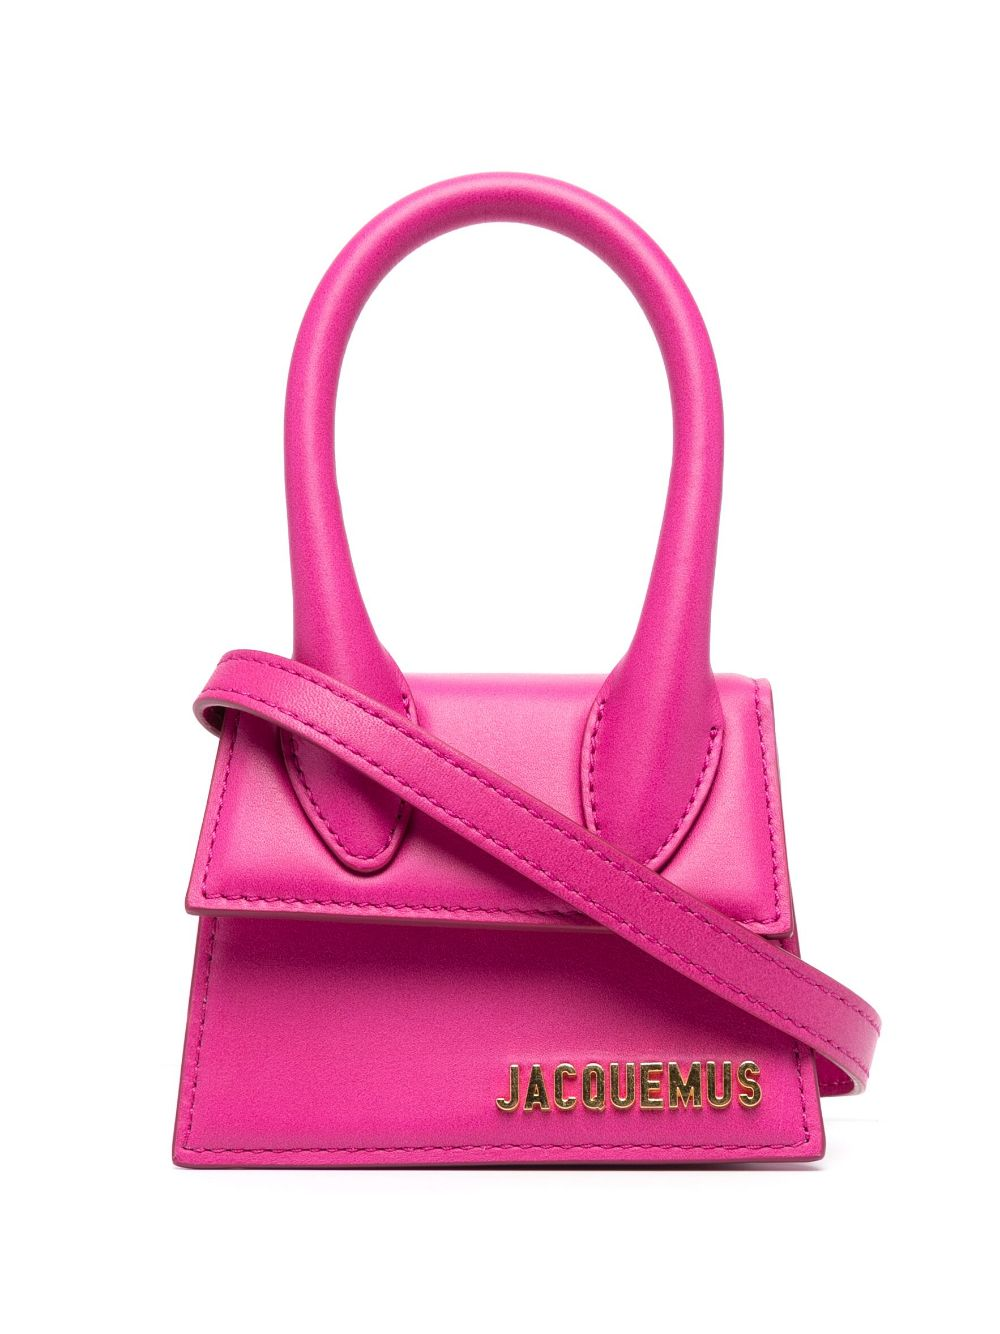 """<p class='small-title'>JACQUEMUS</p>""""Le Chiquito"""" leather Pink mini bag"""